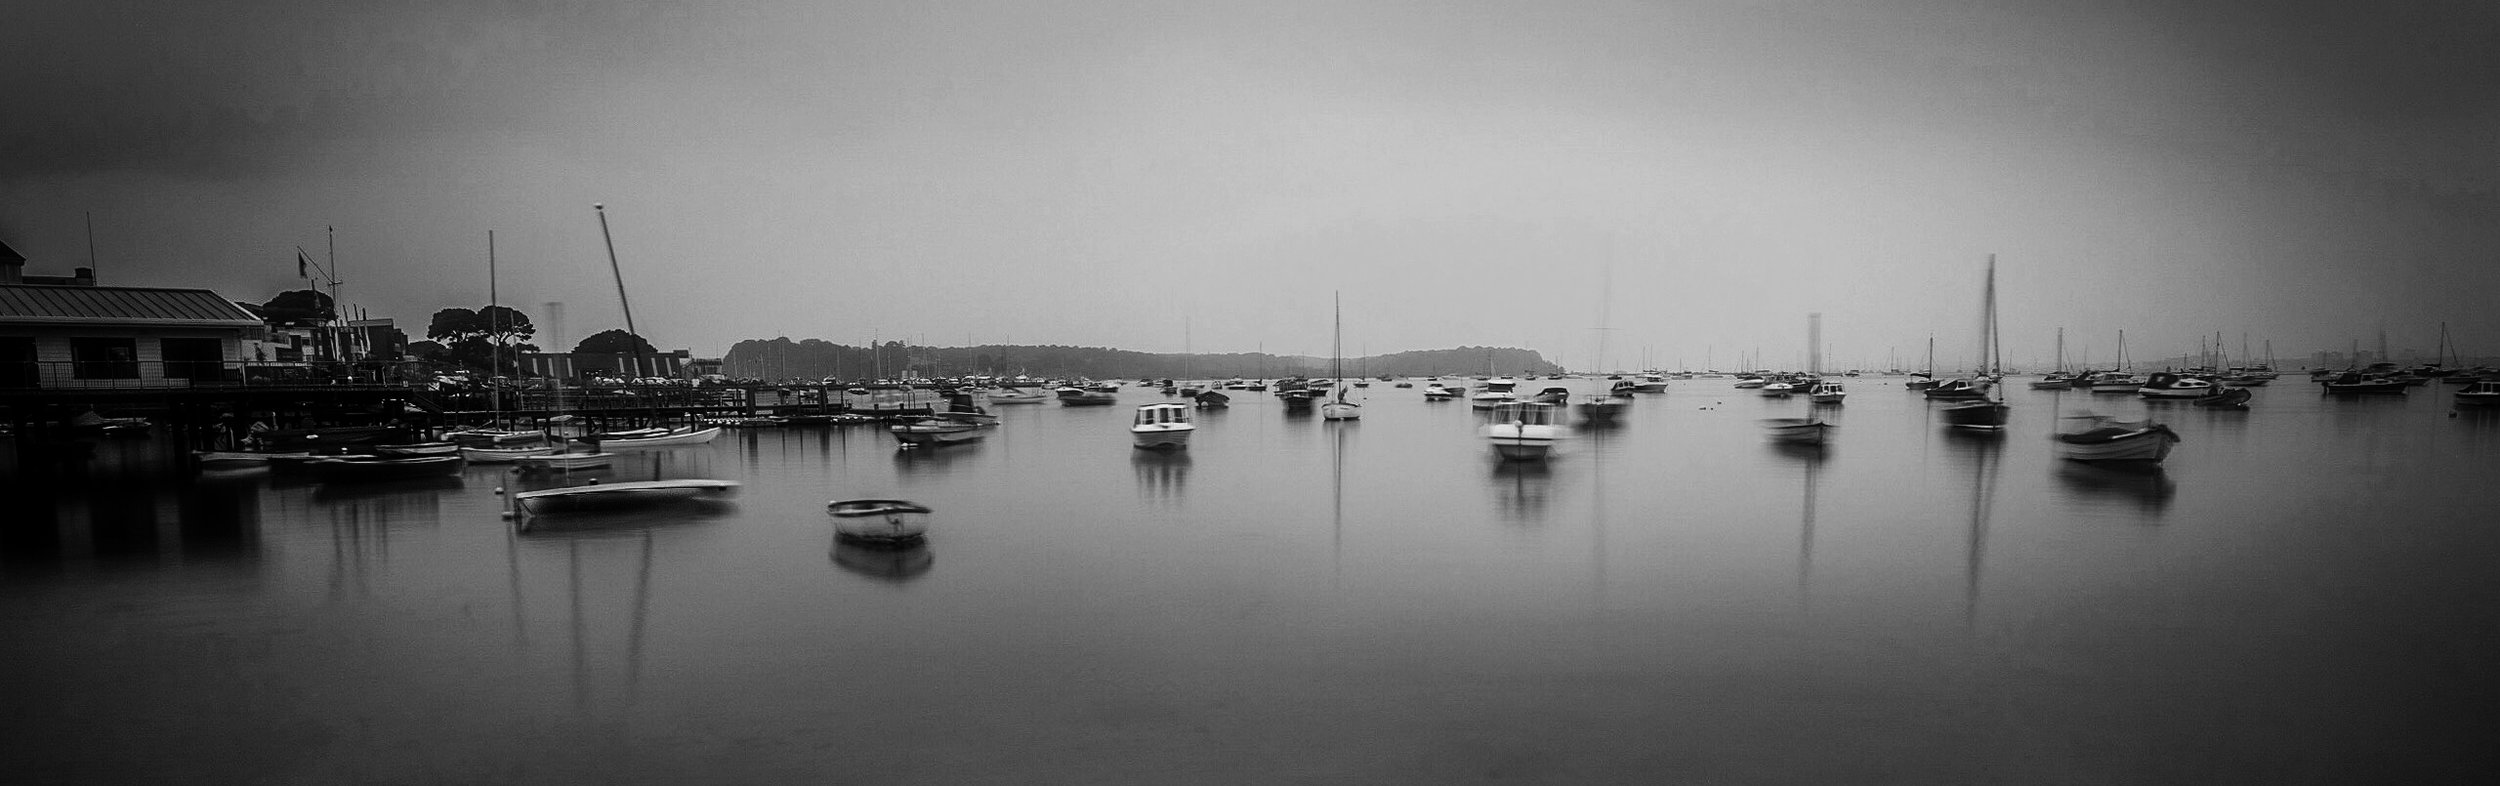 Finally the black and white picture of Sandbanks